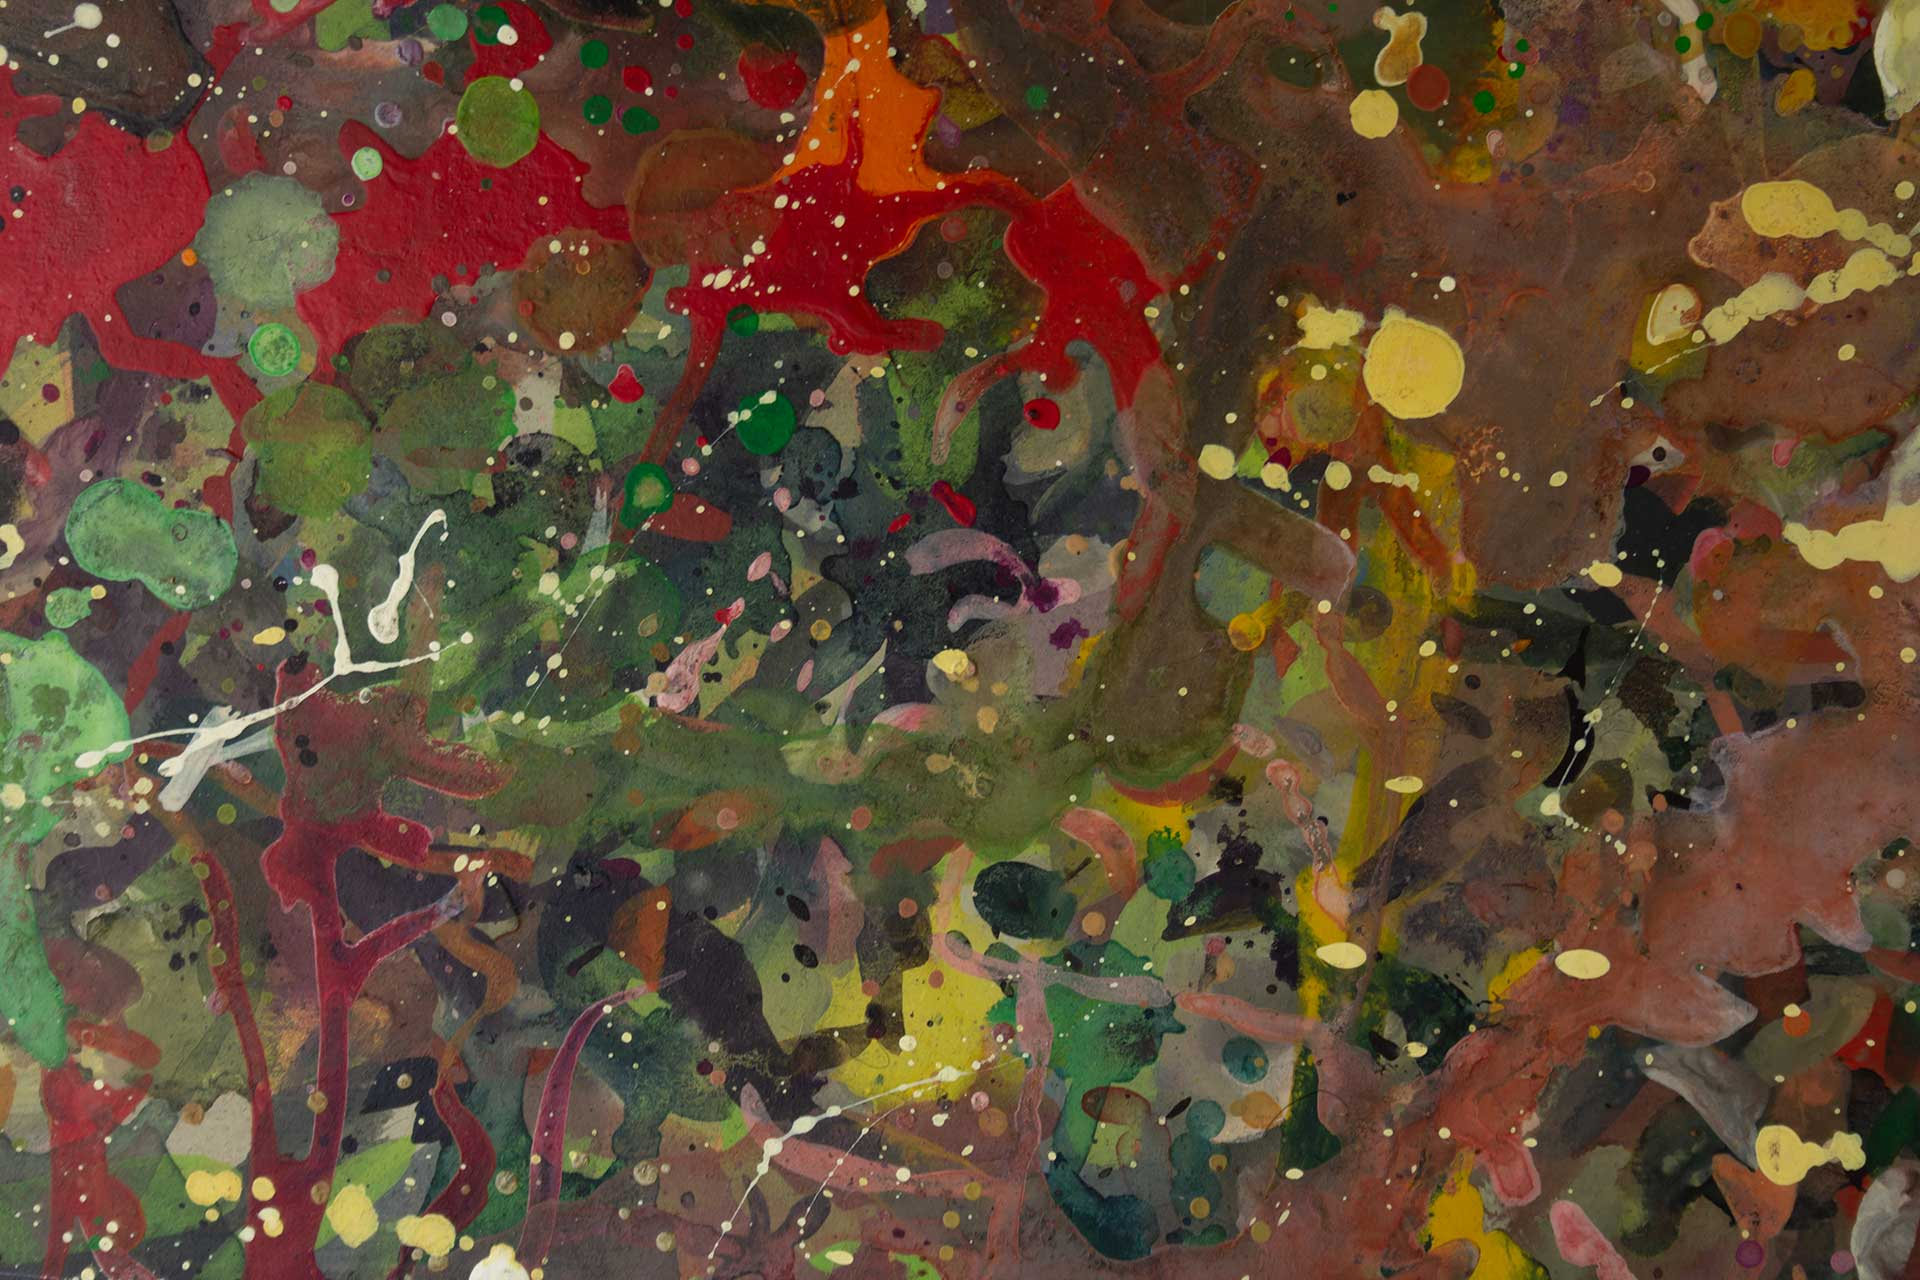 Abstract expressionism painting - Boxing match - Detail 3